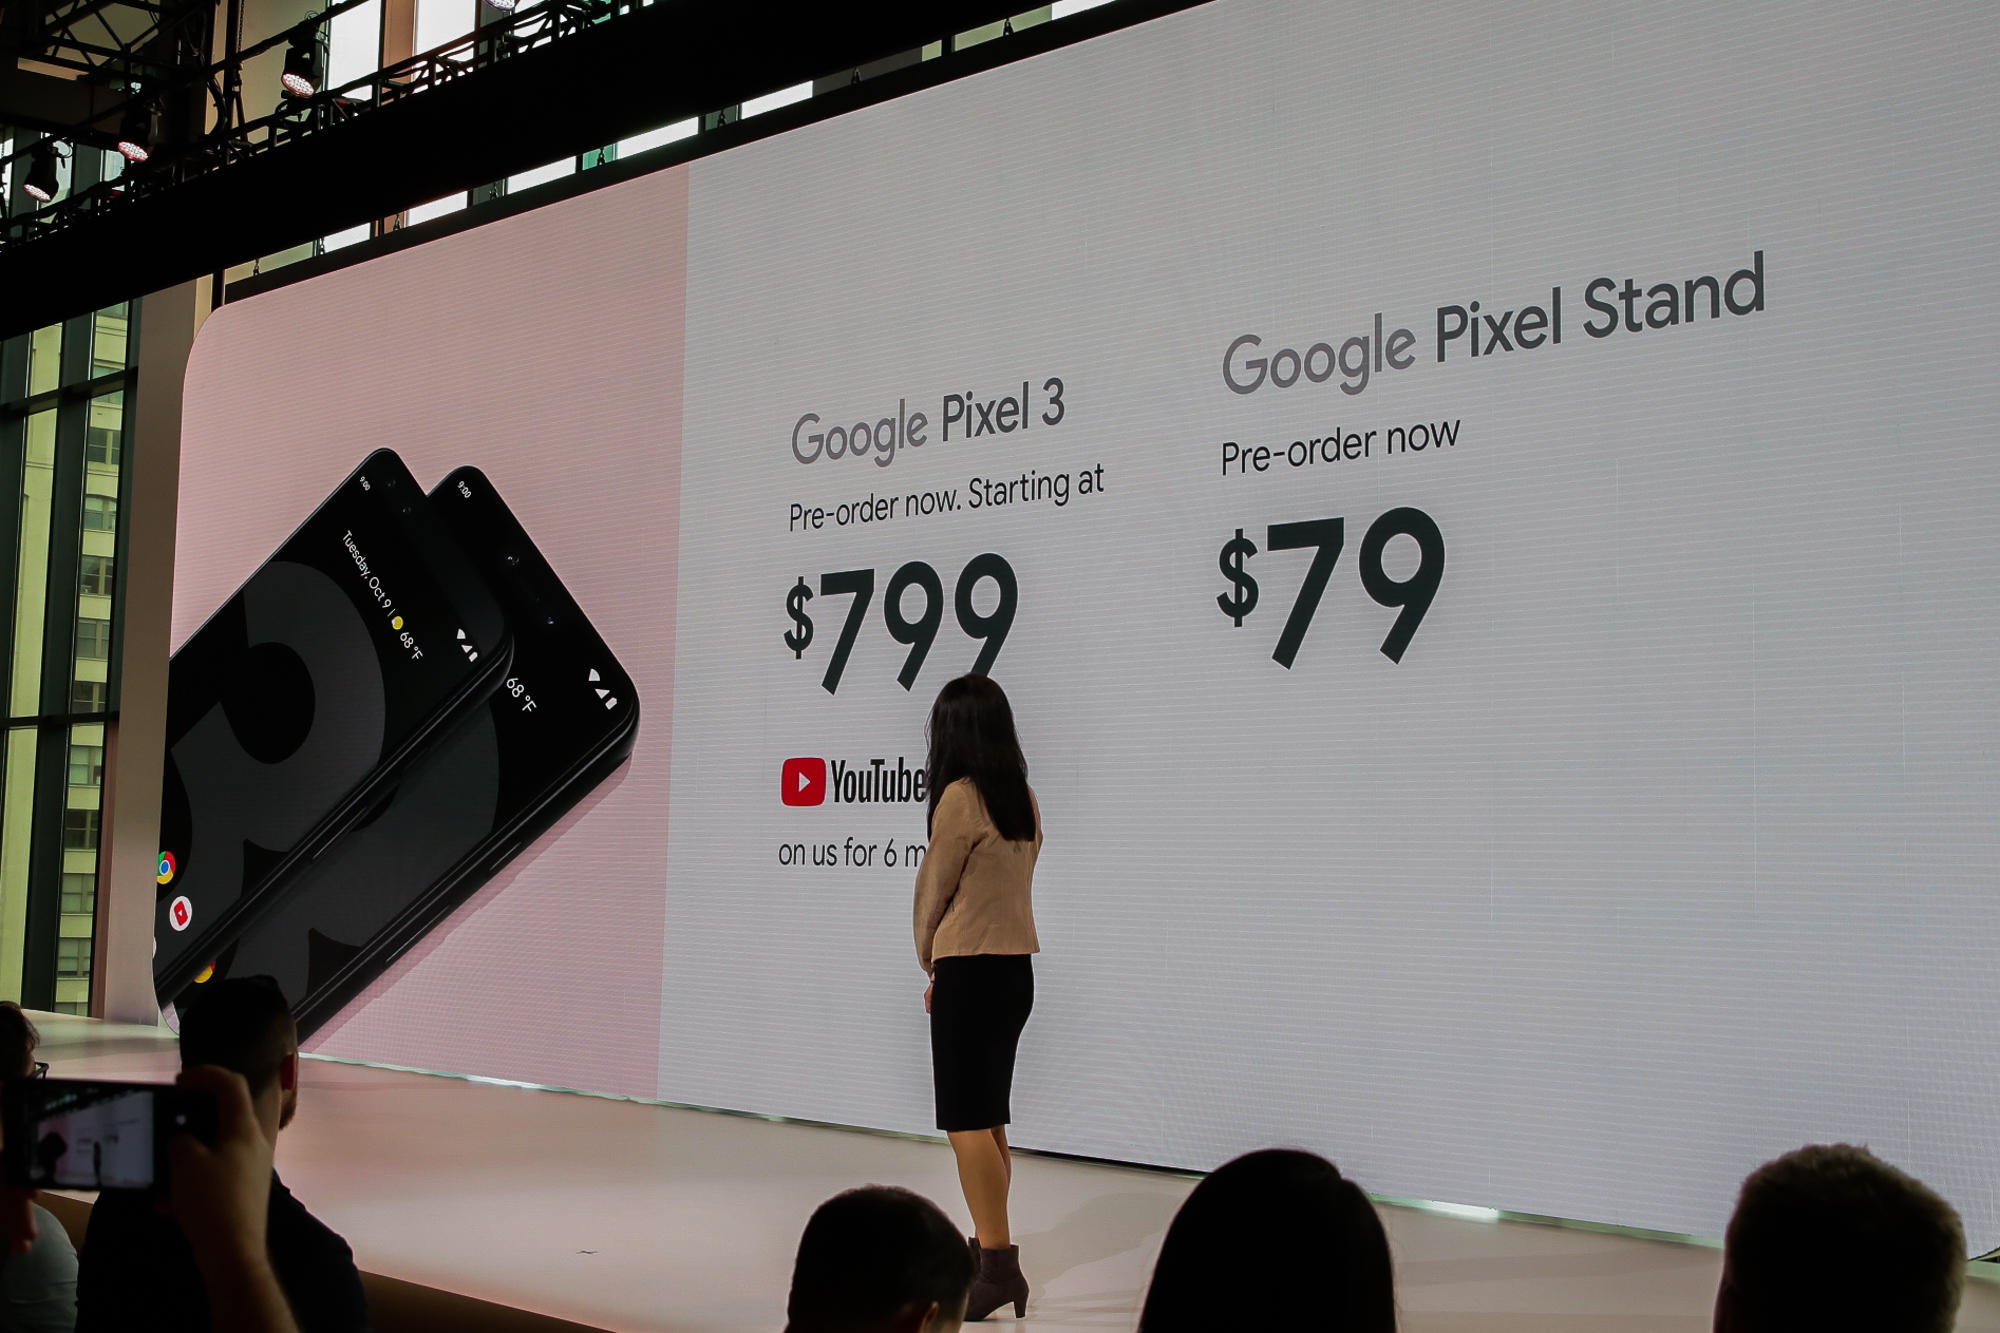 Pixel 3 and Pixel stand cost